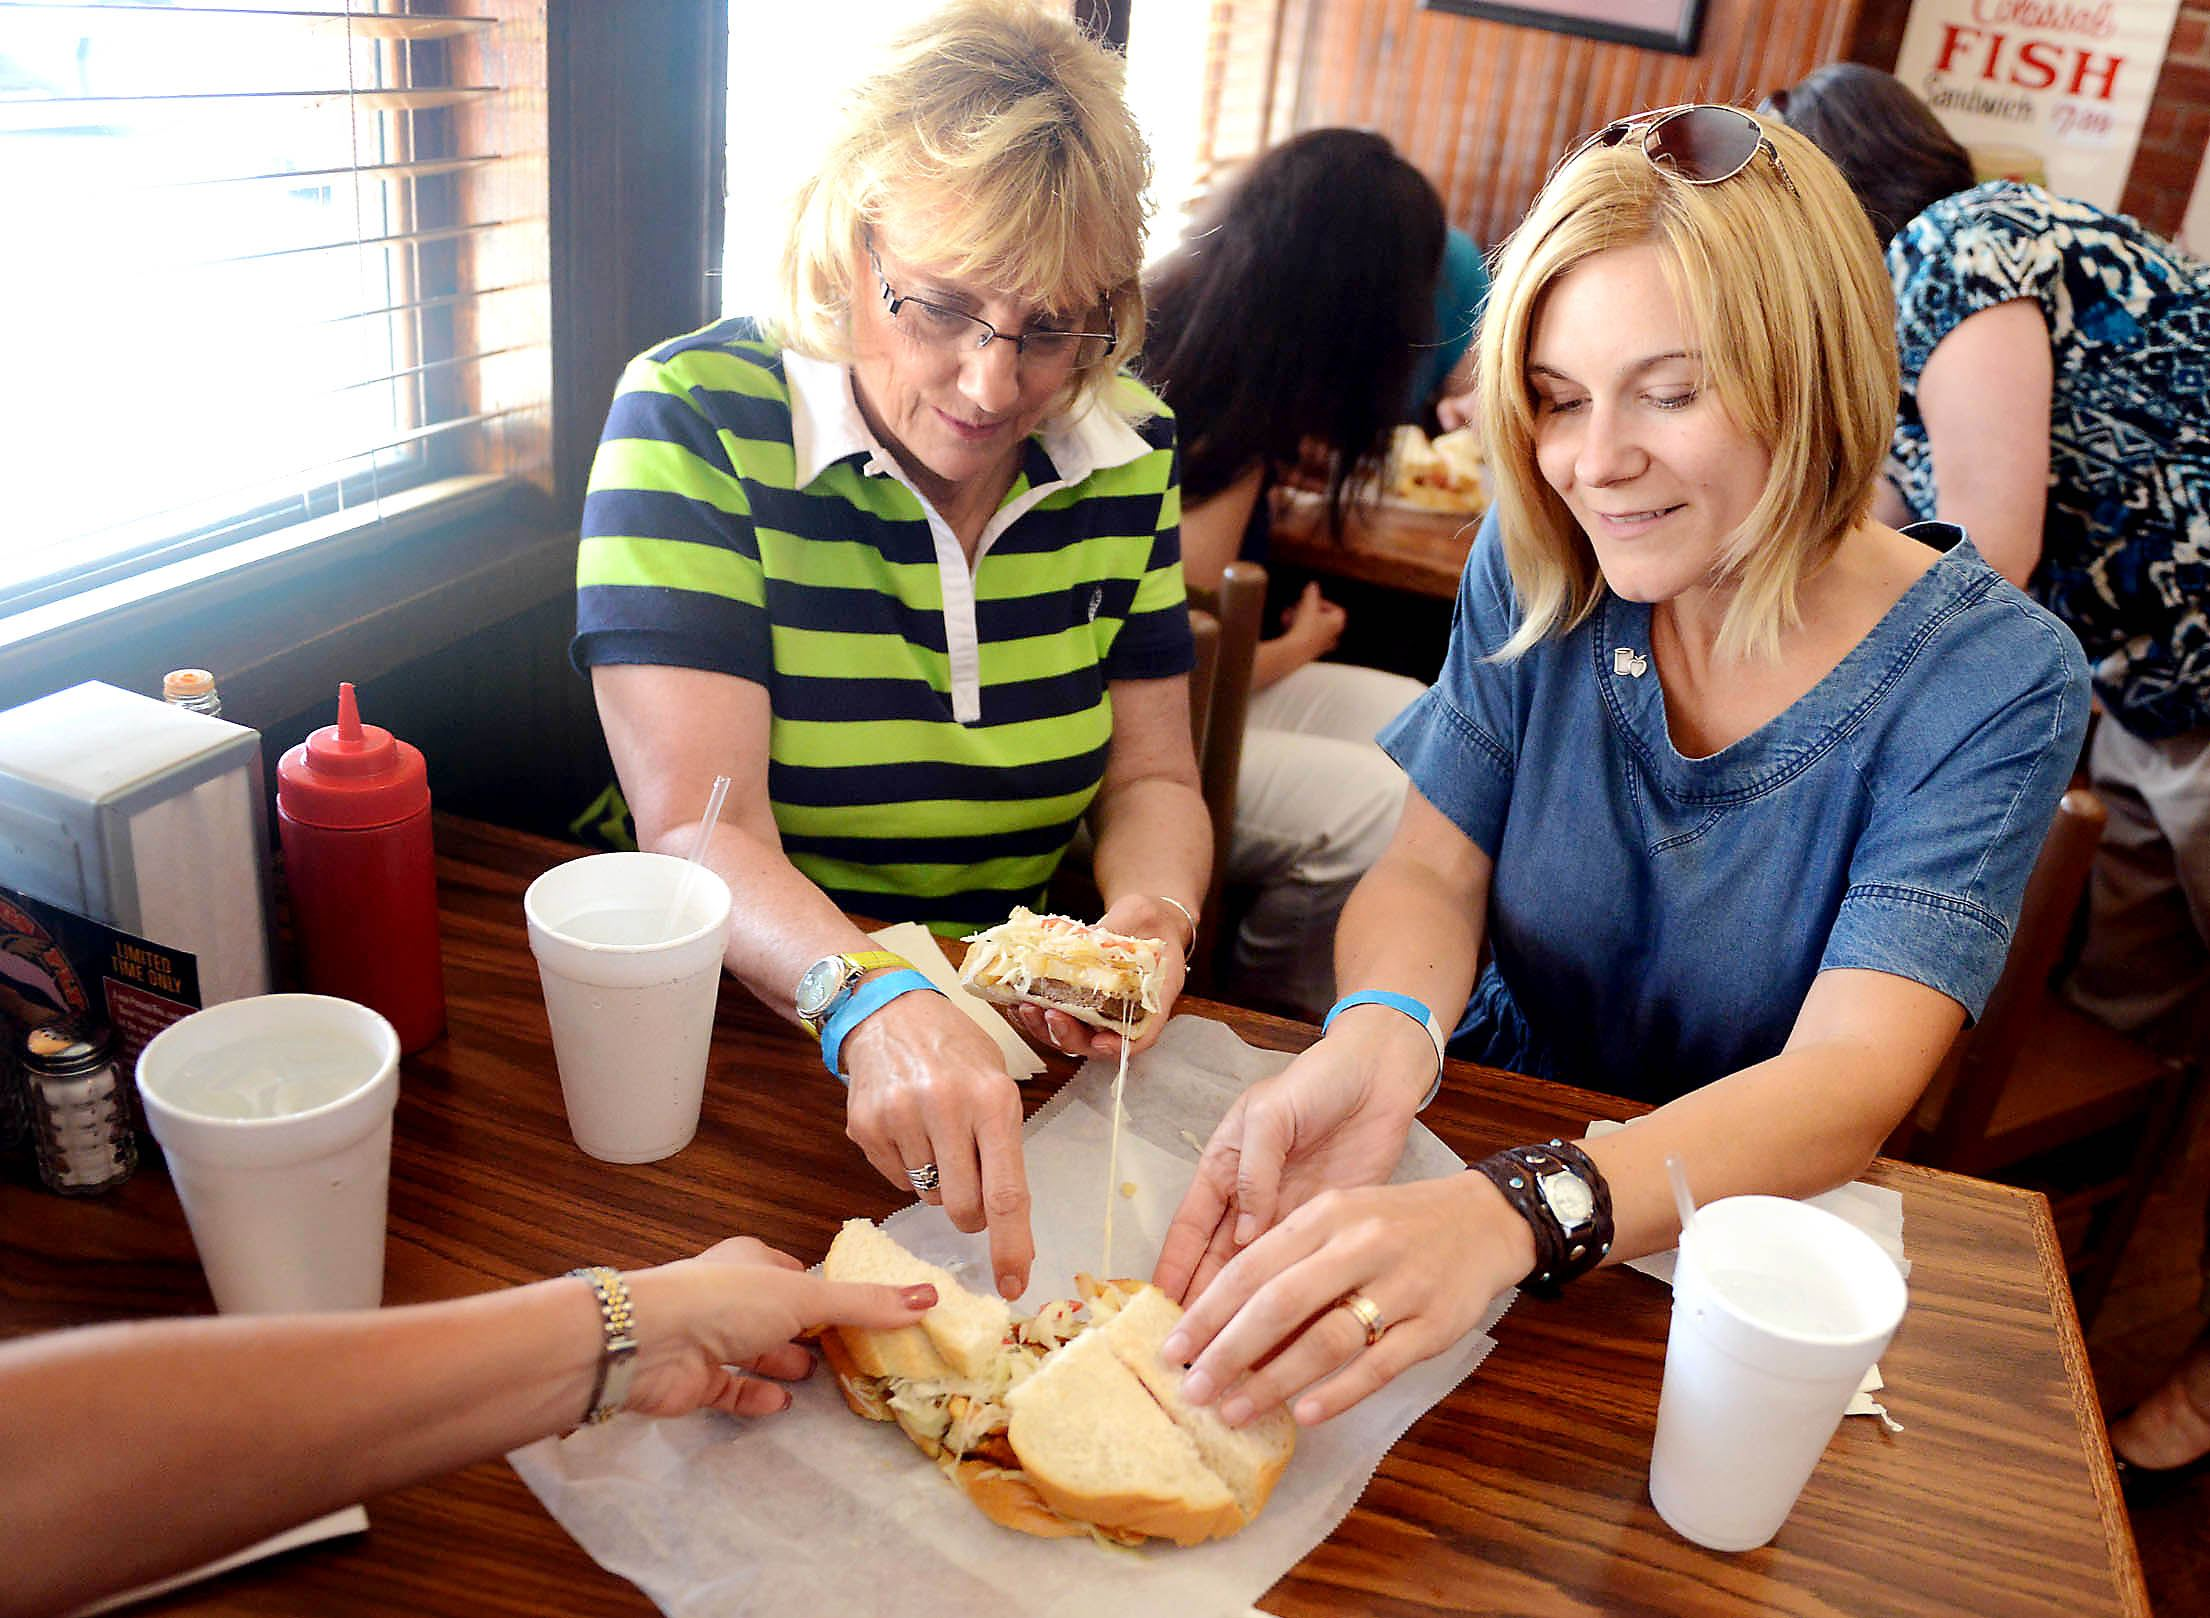 20140627MWHfoodtourFood02-1 Jacqueline Spirnak, left, of Bridgeville, and Alyssa Jurewicz-Johns, of Shadyside, pick up fourths of a Primanti Brothers sandwich at their Strip District location during the Flavor of Pittsburgh Food Tour on June 27, 2014.